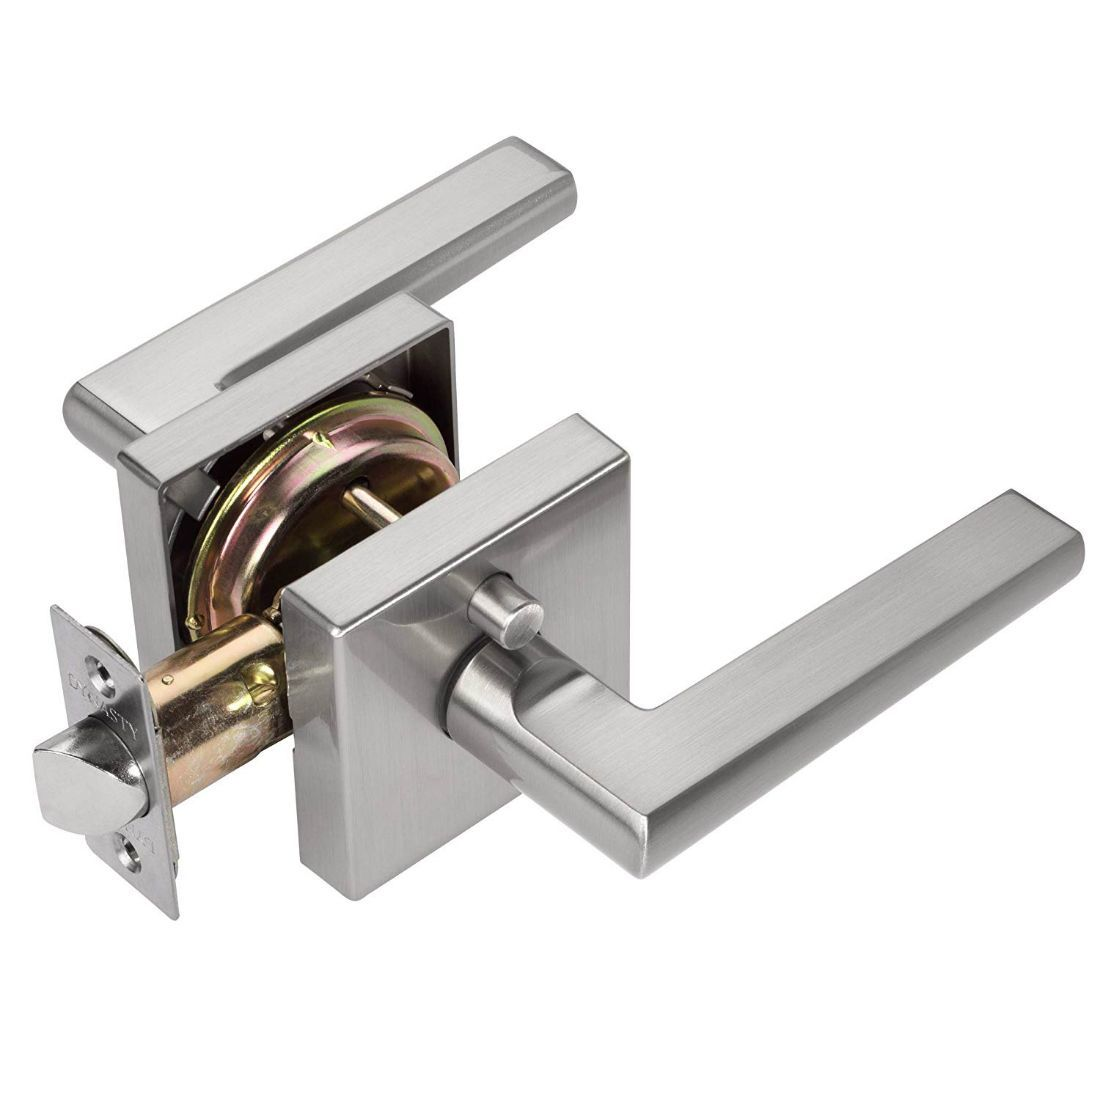 Dynasty Hardware Capri CAP-30-US15 Privacy Door Lever, Satin Nickel